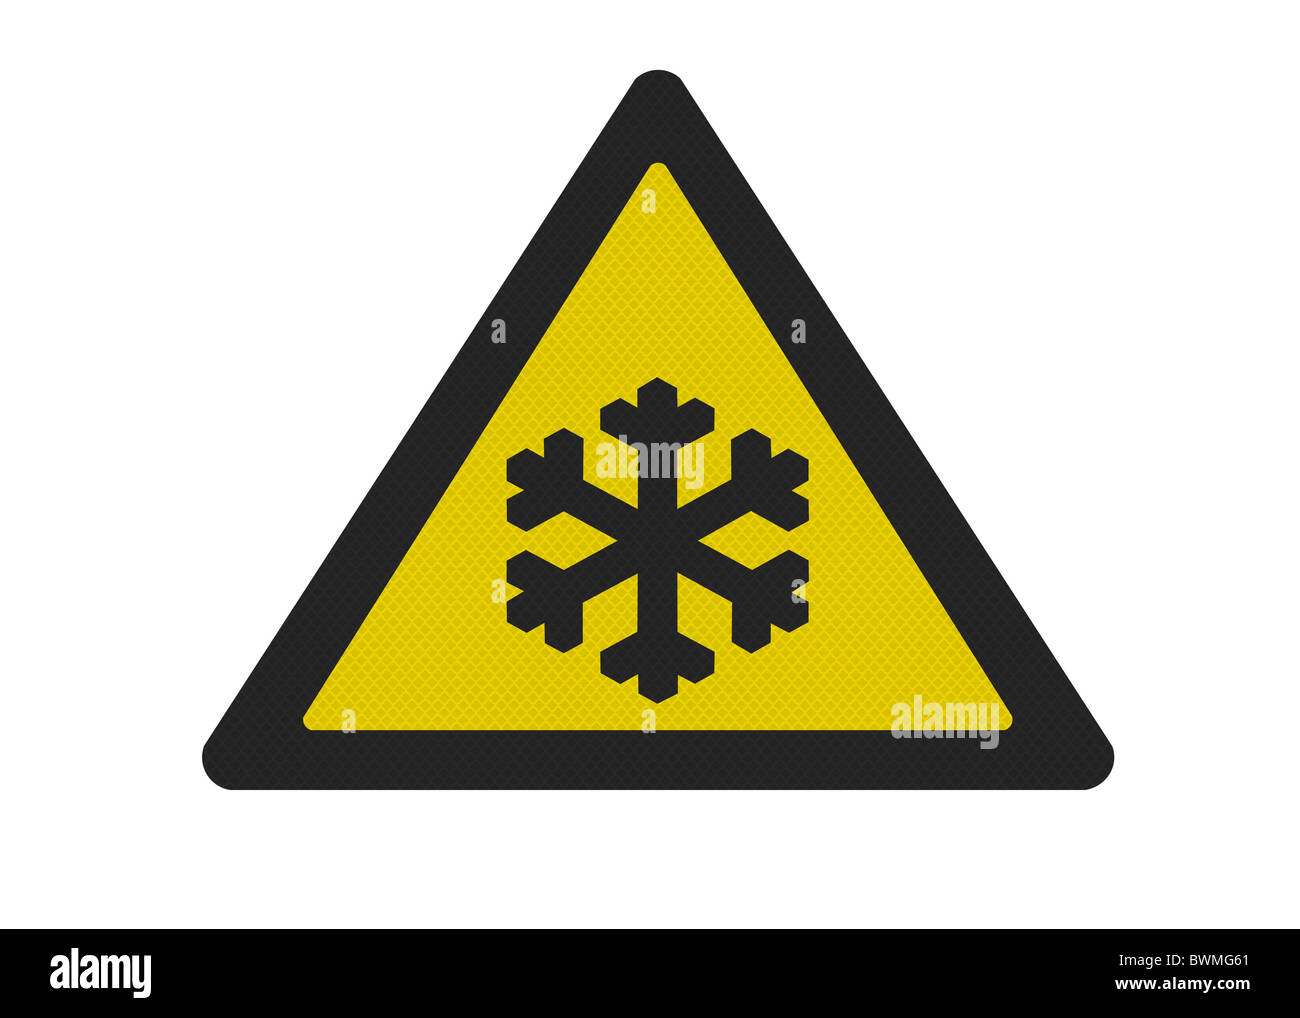 Photo realistic reflective metallic 'risk of ice' sign, isolated on a pure white background. - Stock Image